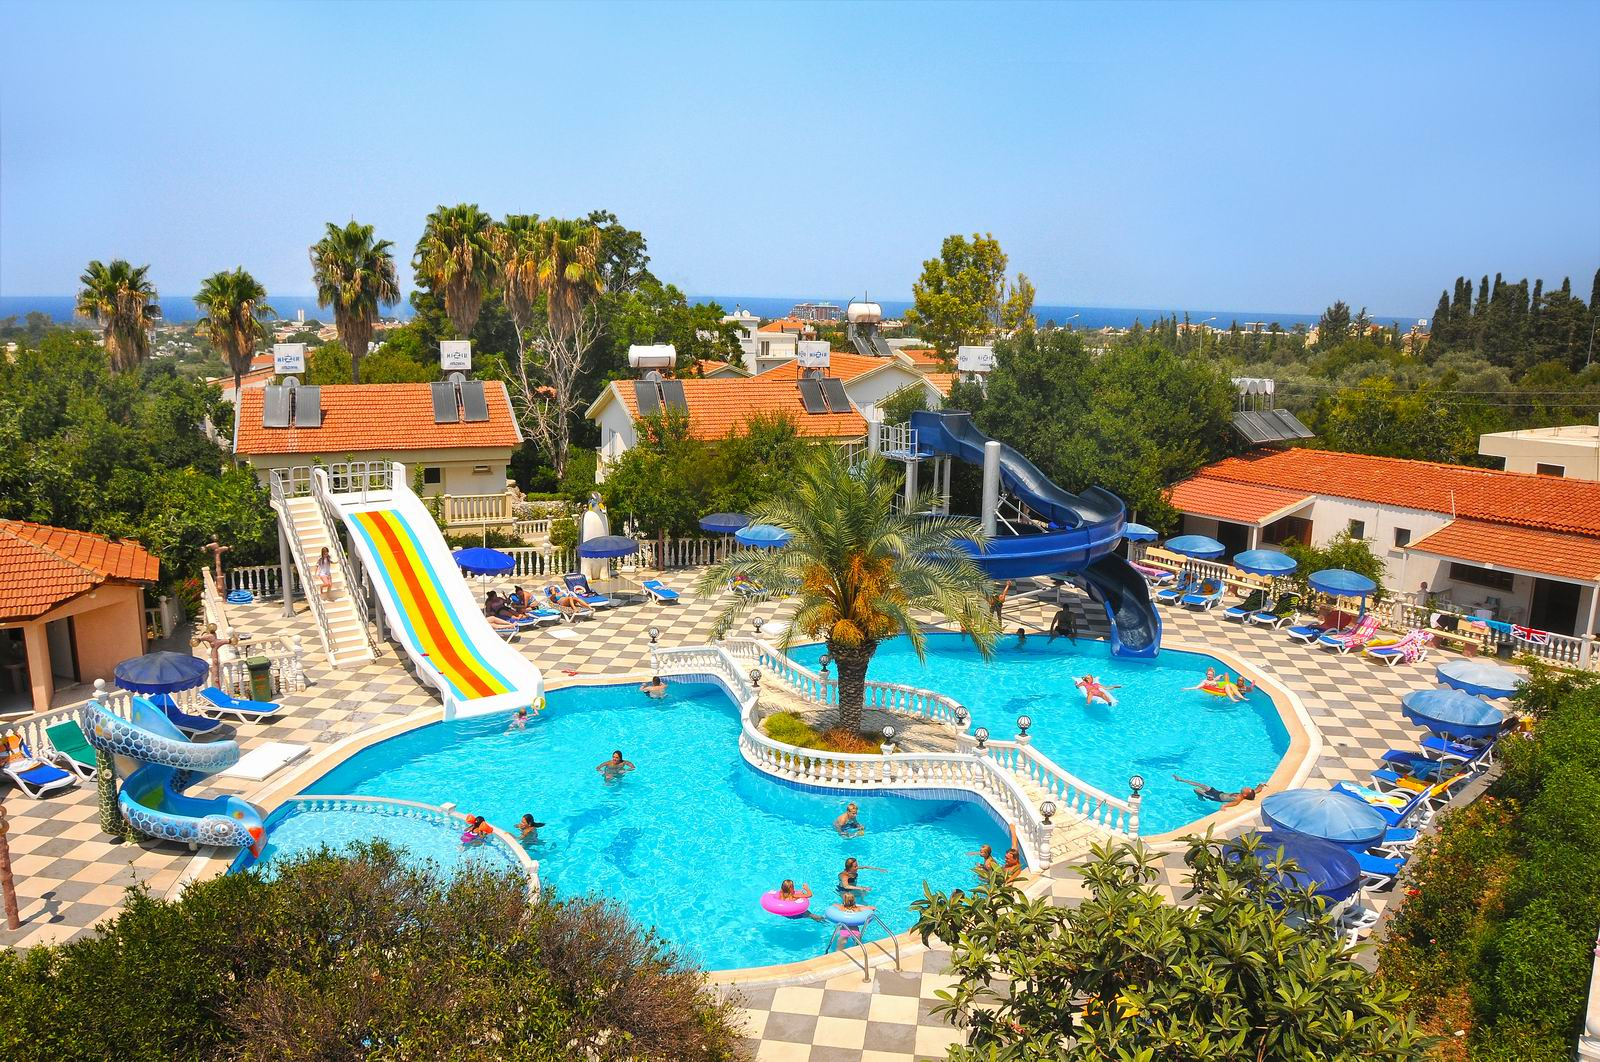 CYPR - LATO 2019: Riverside Garden Resort****, 8 dni (07-14.06.2019 r.), all inclusive soft: 2 + 1